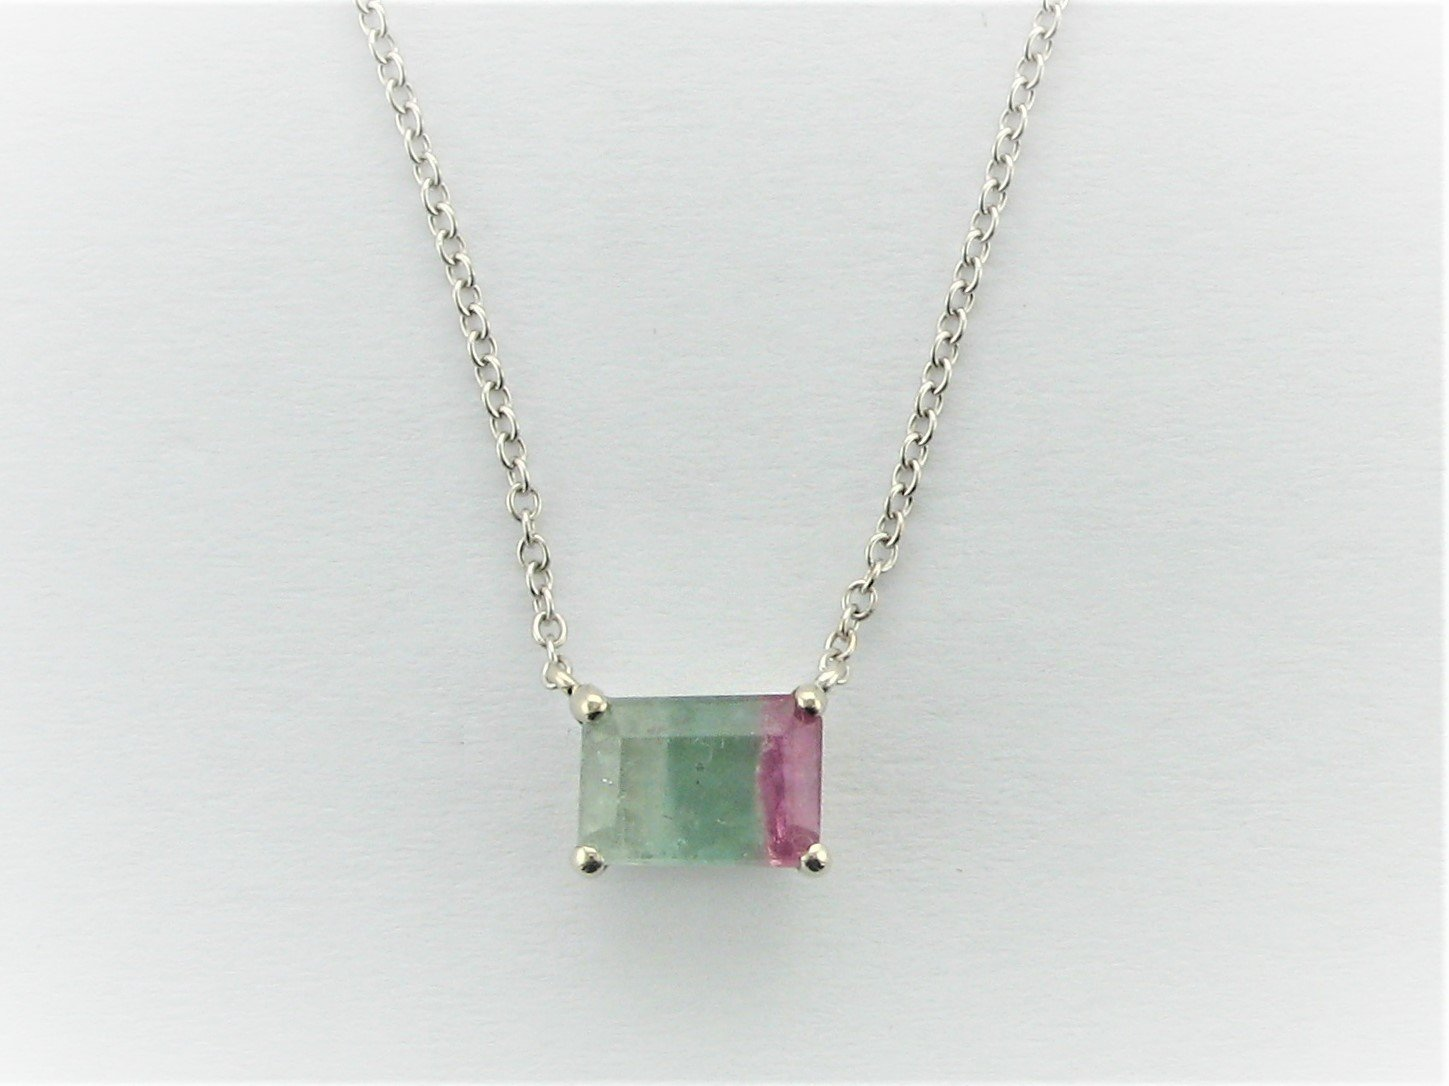 1.18 Total Carat Weight Tri - Colored Tourmaline Stationary Necklace Set in 14 Karat White Gold